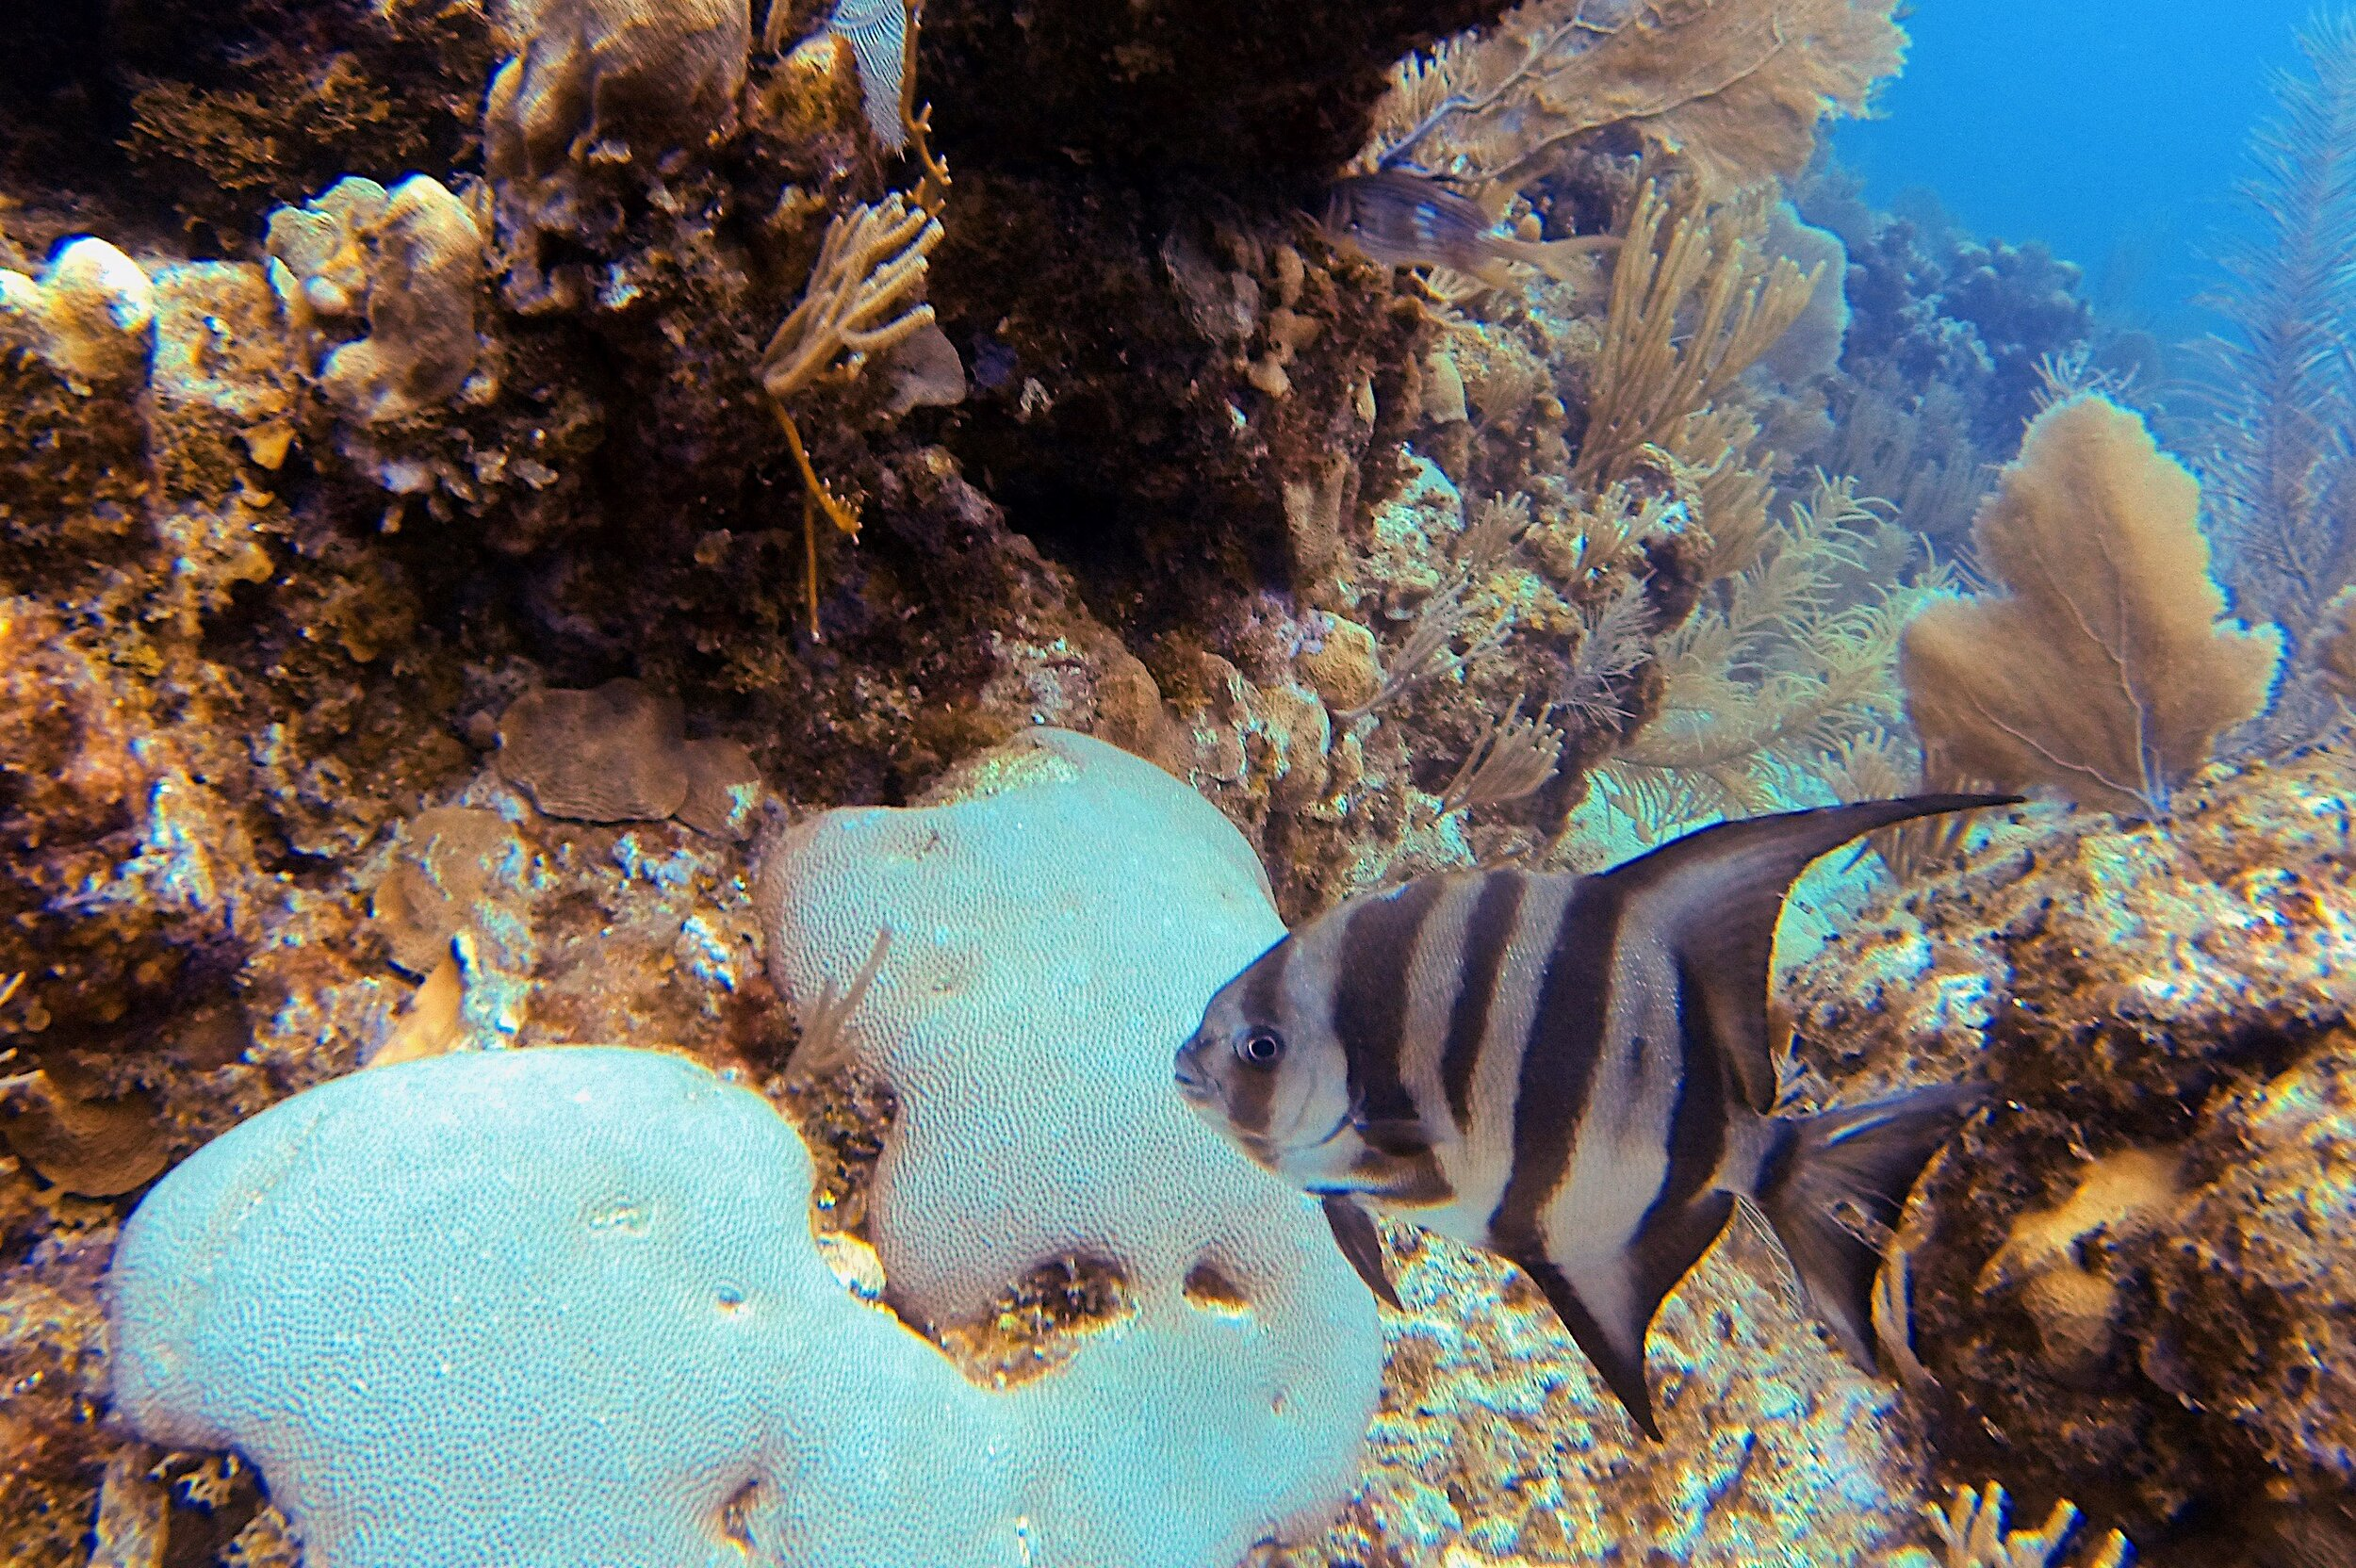 Atlantic Spadefish and bleached Massive Starlet Coral